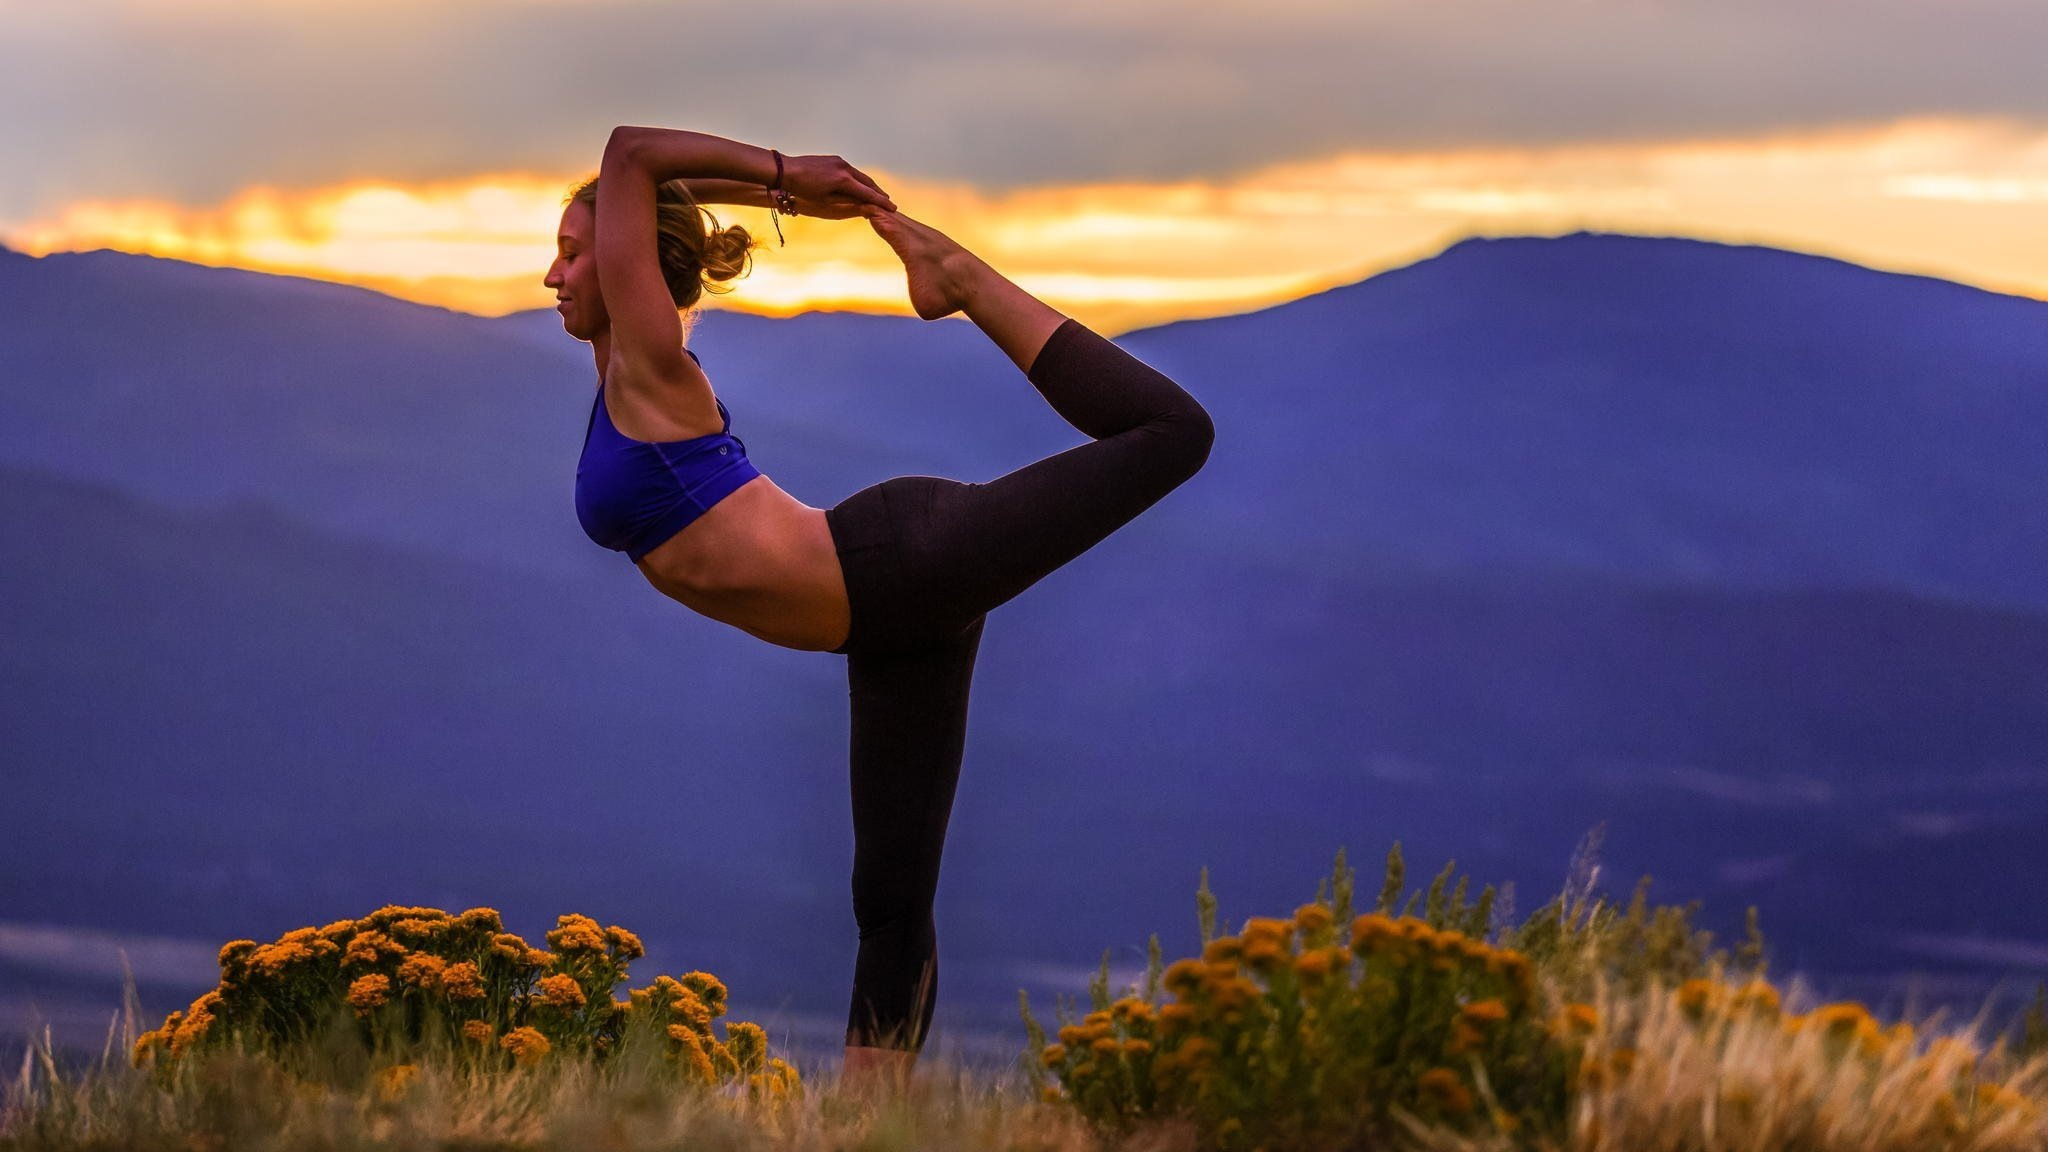 yoga poses hd Fresh yoga pose girl nature landscape hd wallpaper